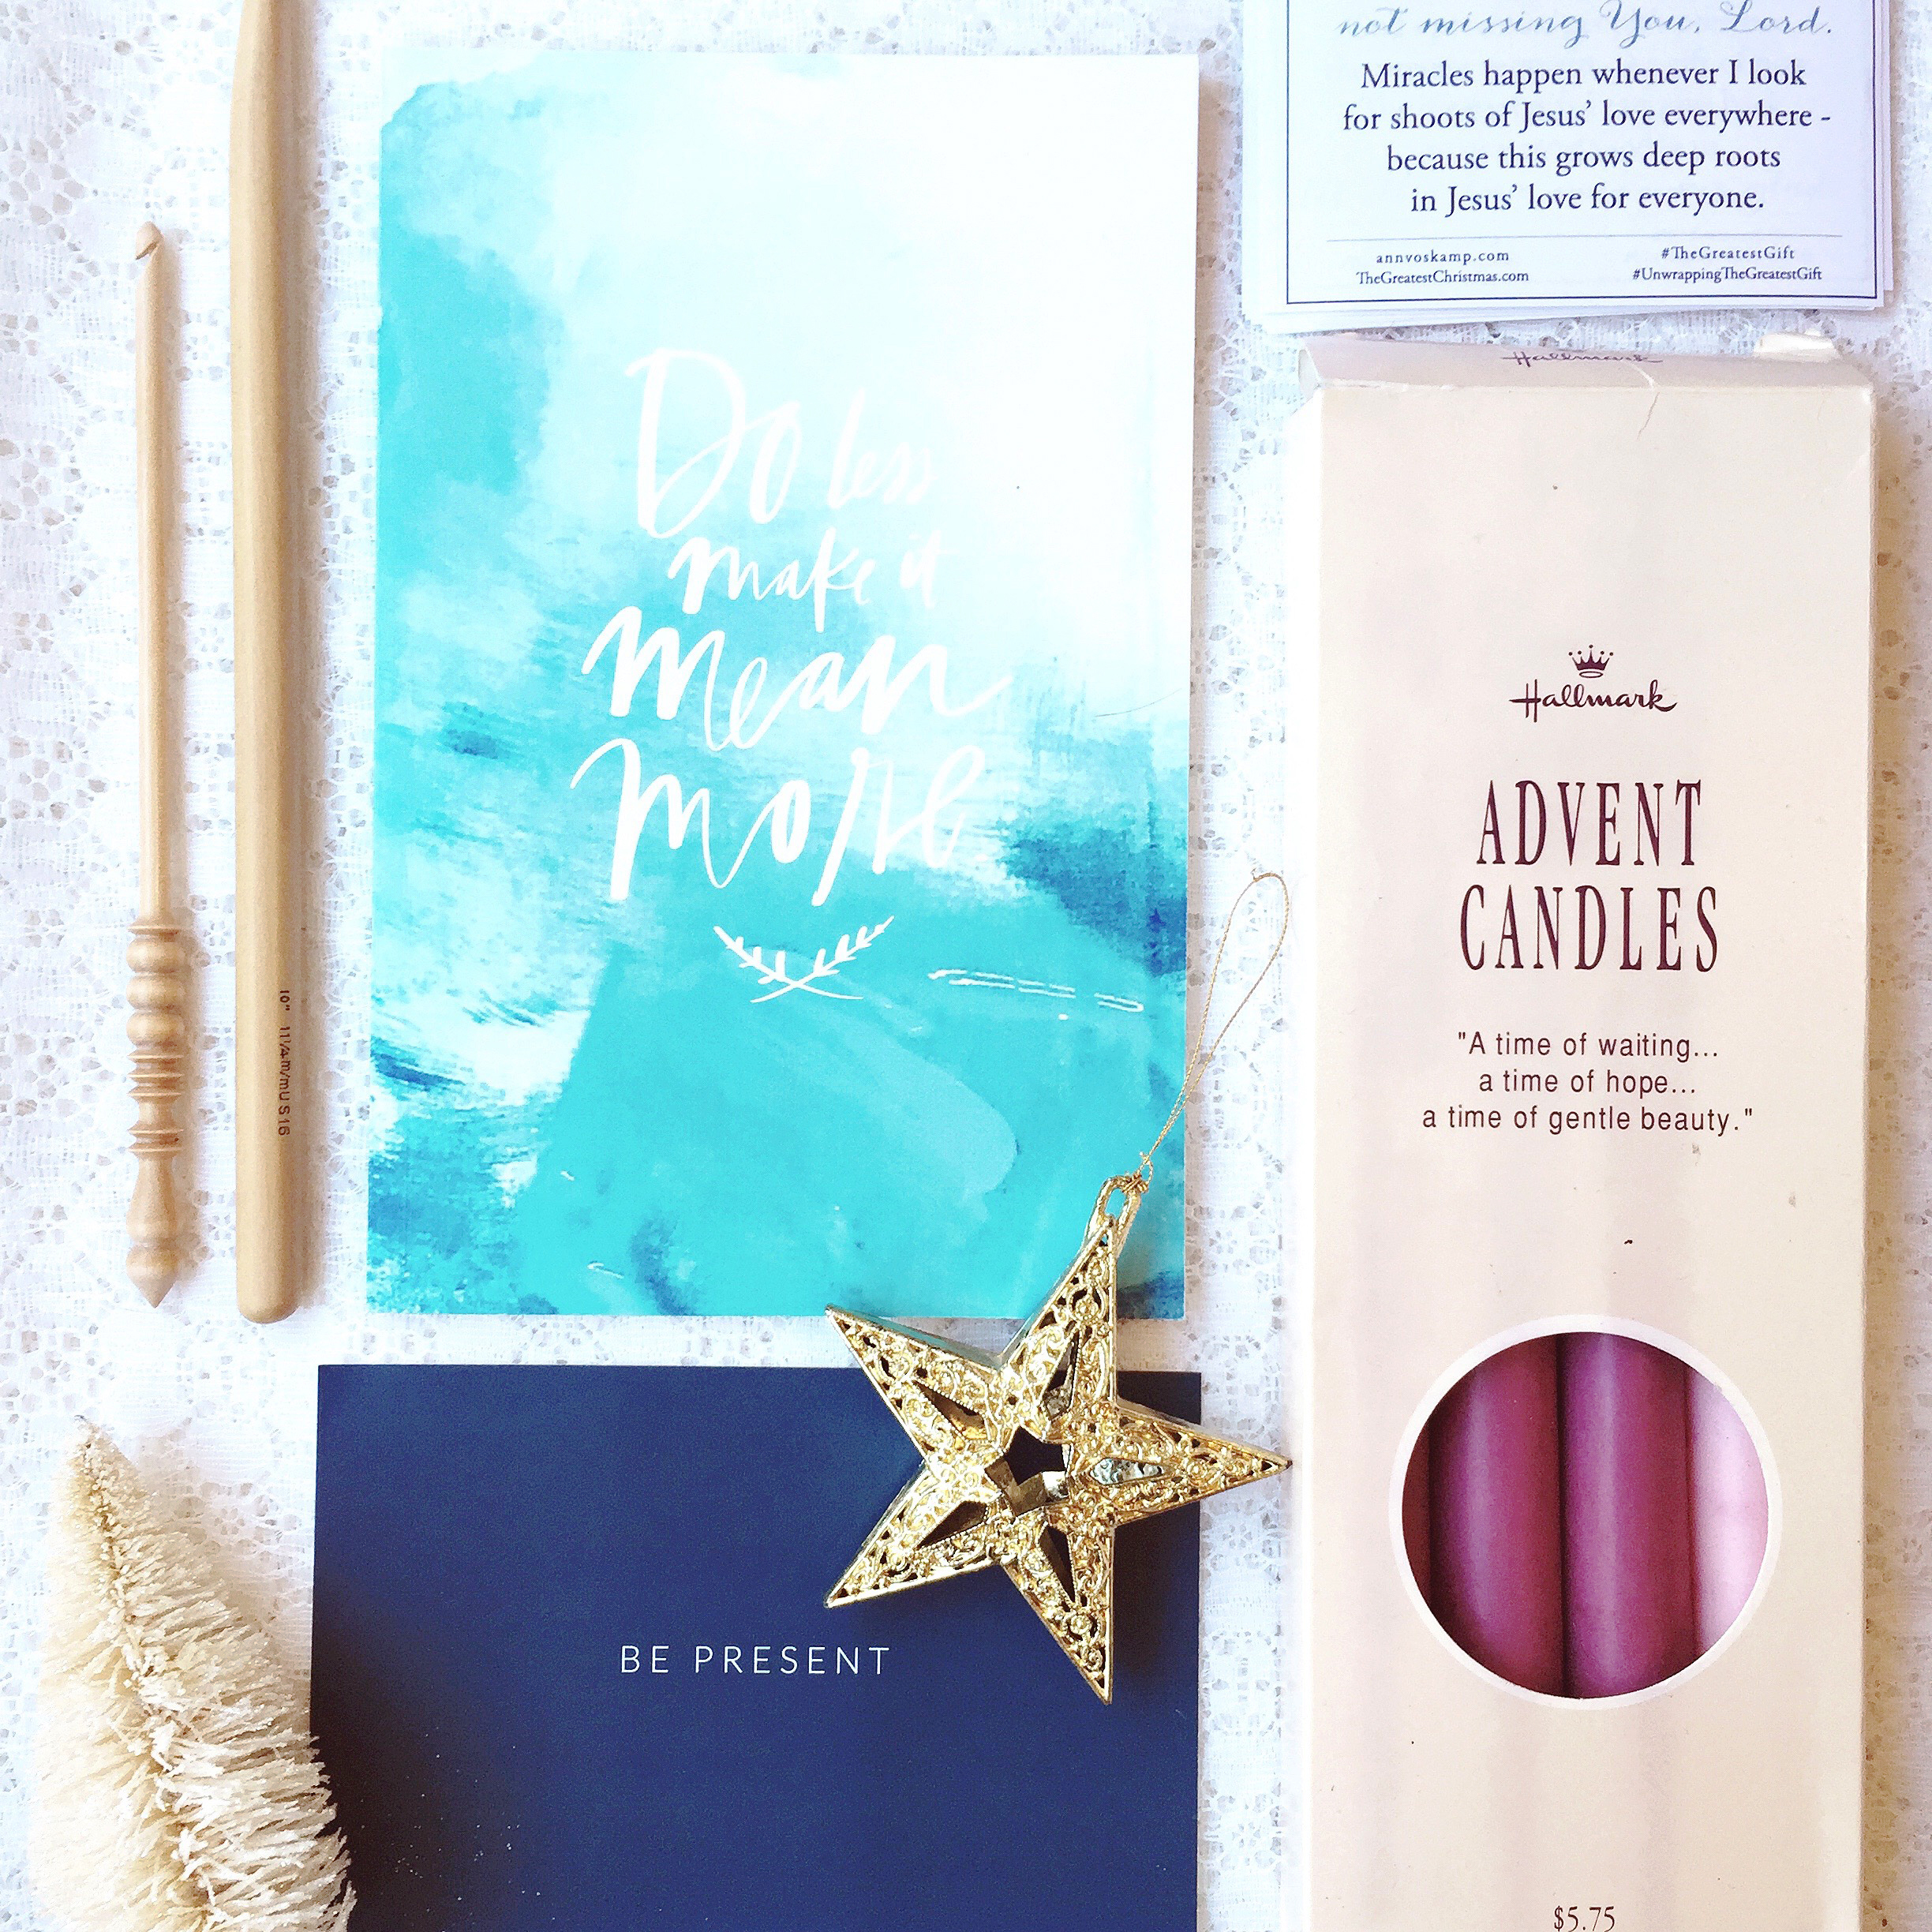 Advent Essentials: Keeping the holidays simple and creating focus